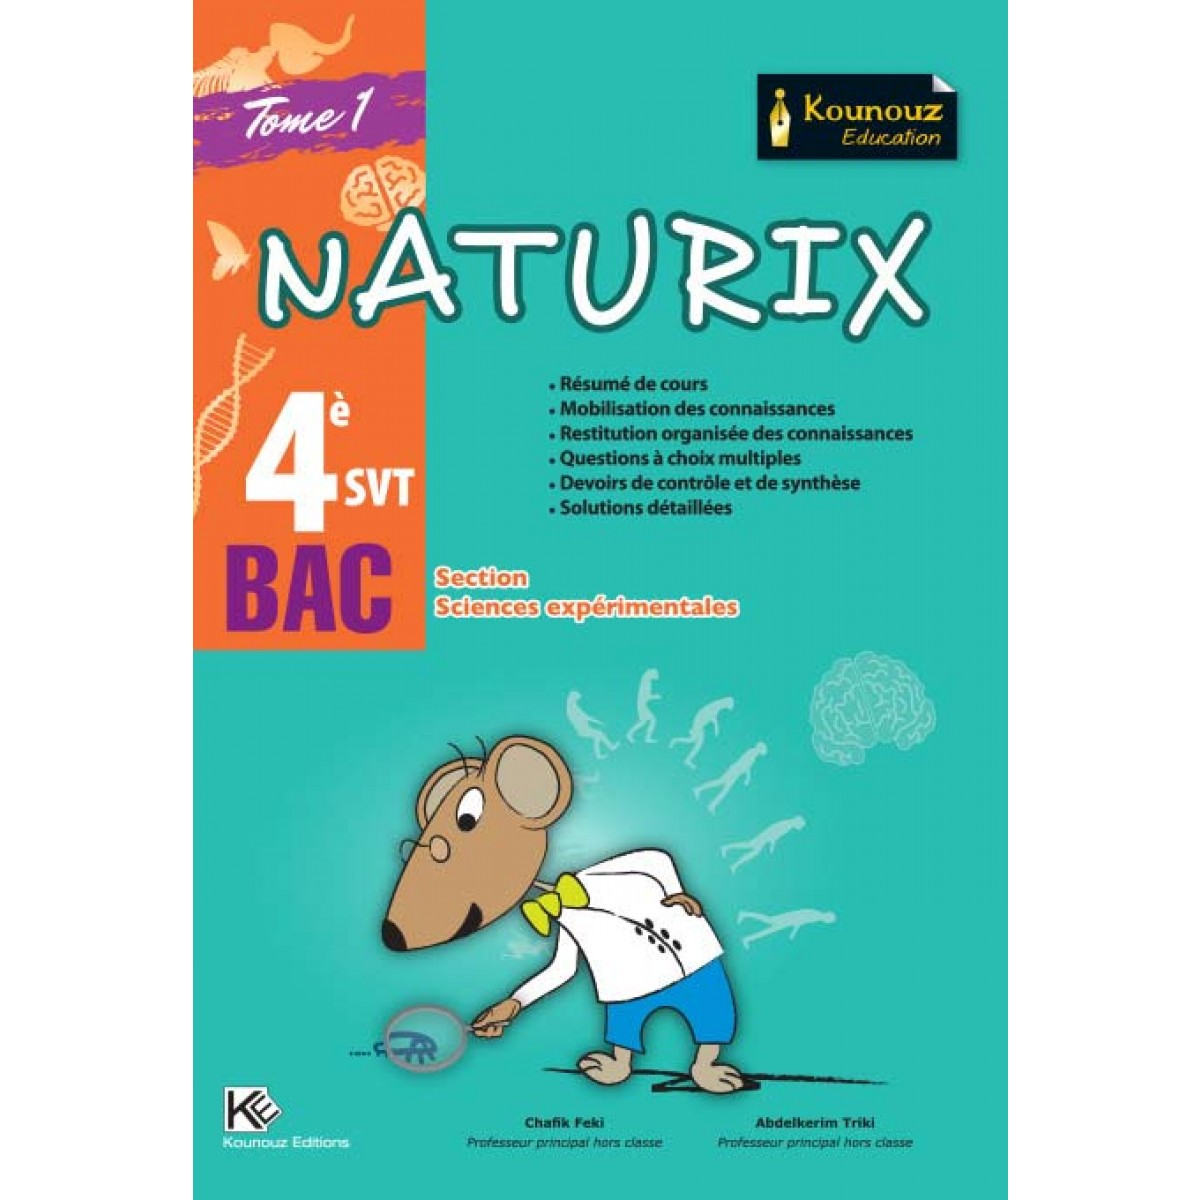 naturix svt bac section science exp tome 1 - Resume Francais Bac Science